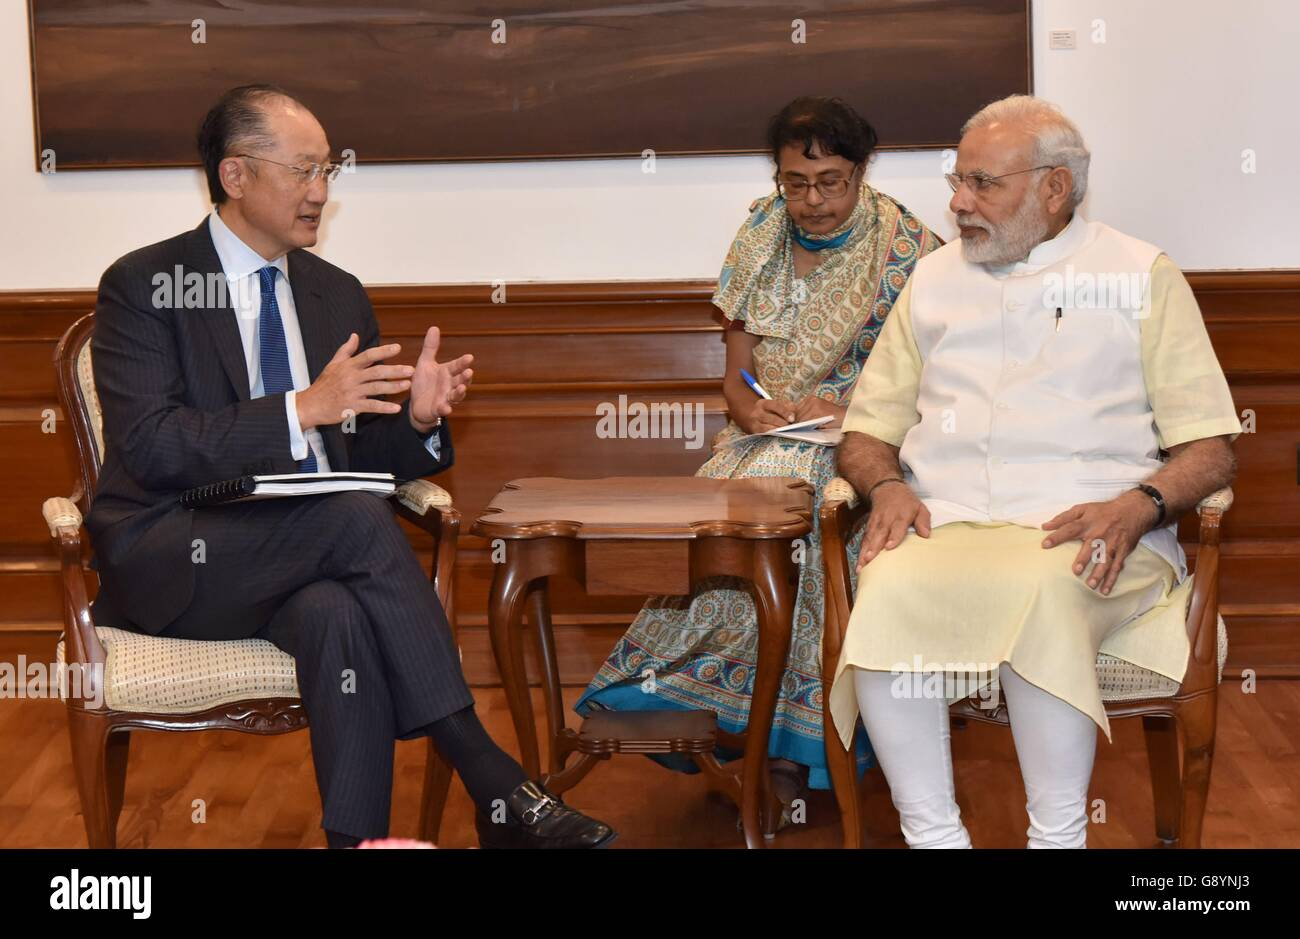 Indian Prime Minister Narendra Modi meets with World Bank President Jim Yong Kim June 30, 2016 in New Dehli, India. - Stock Image